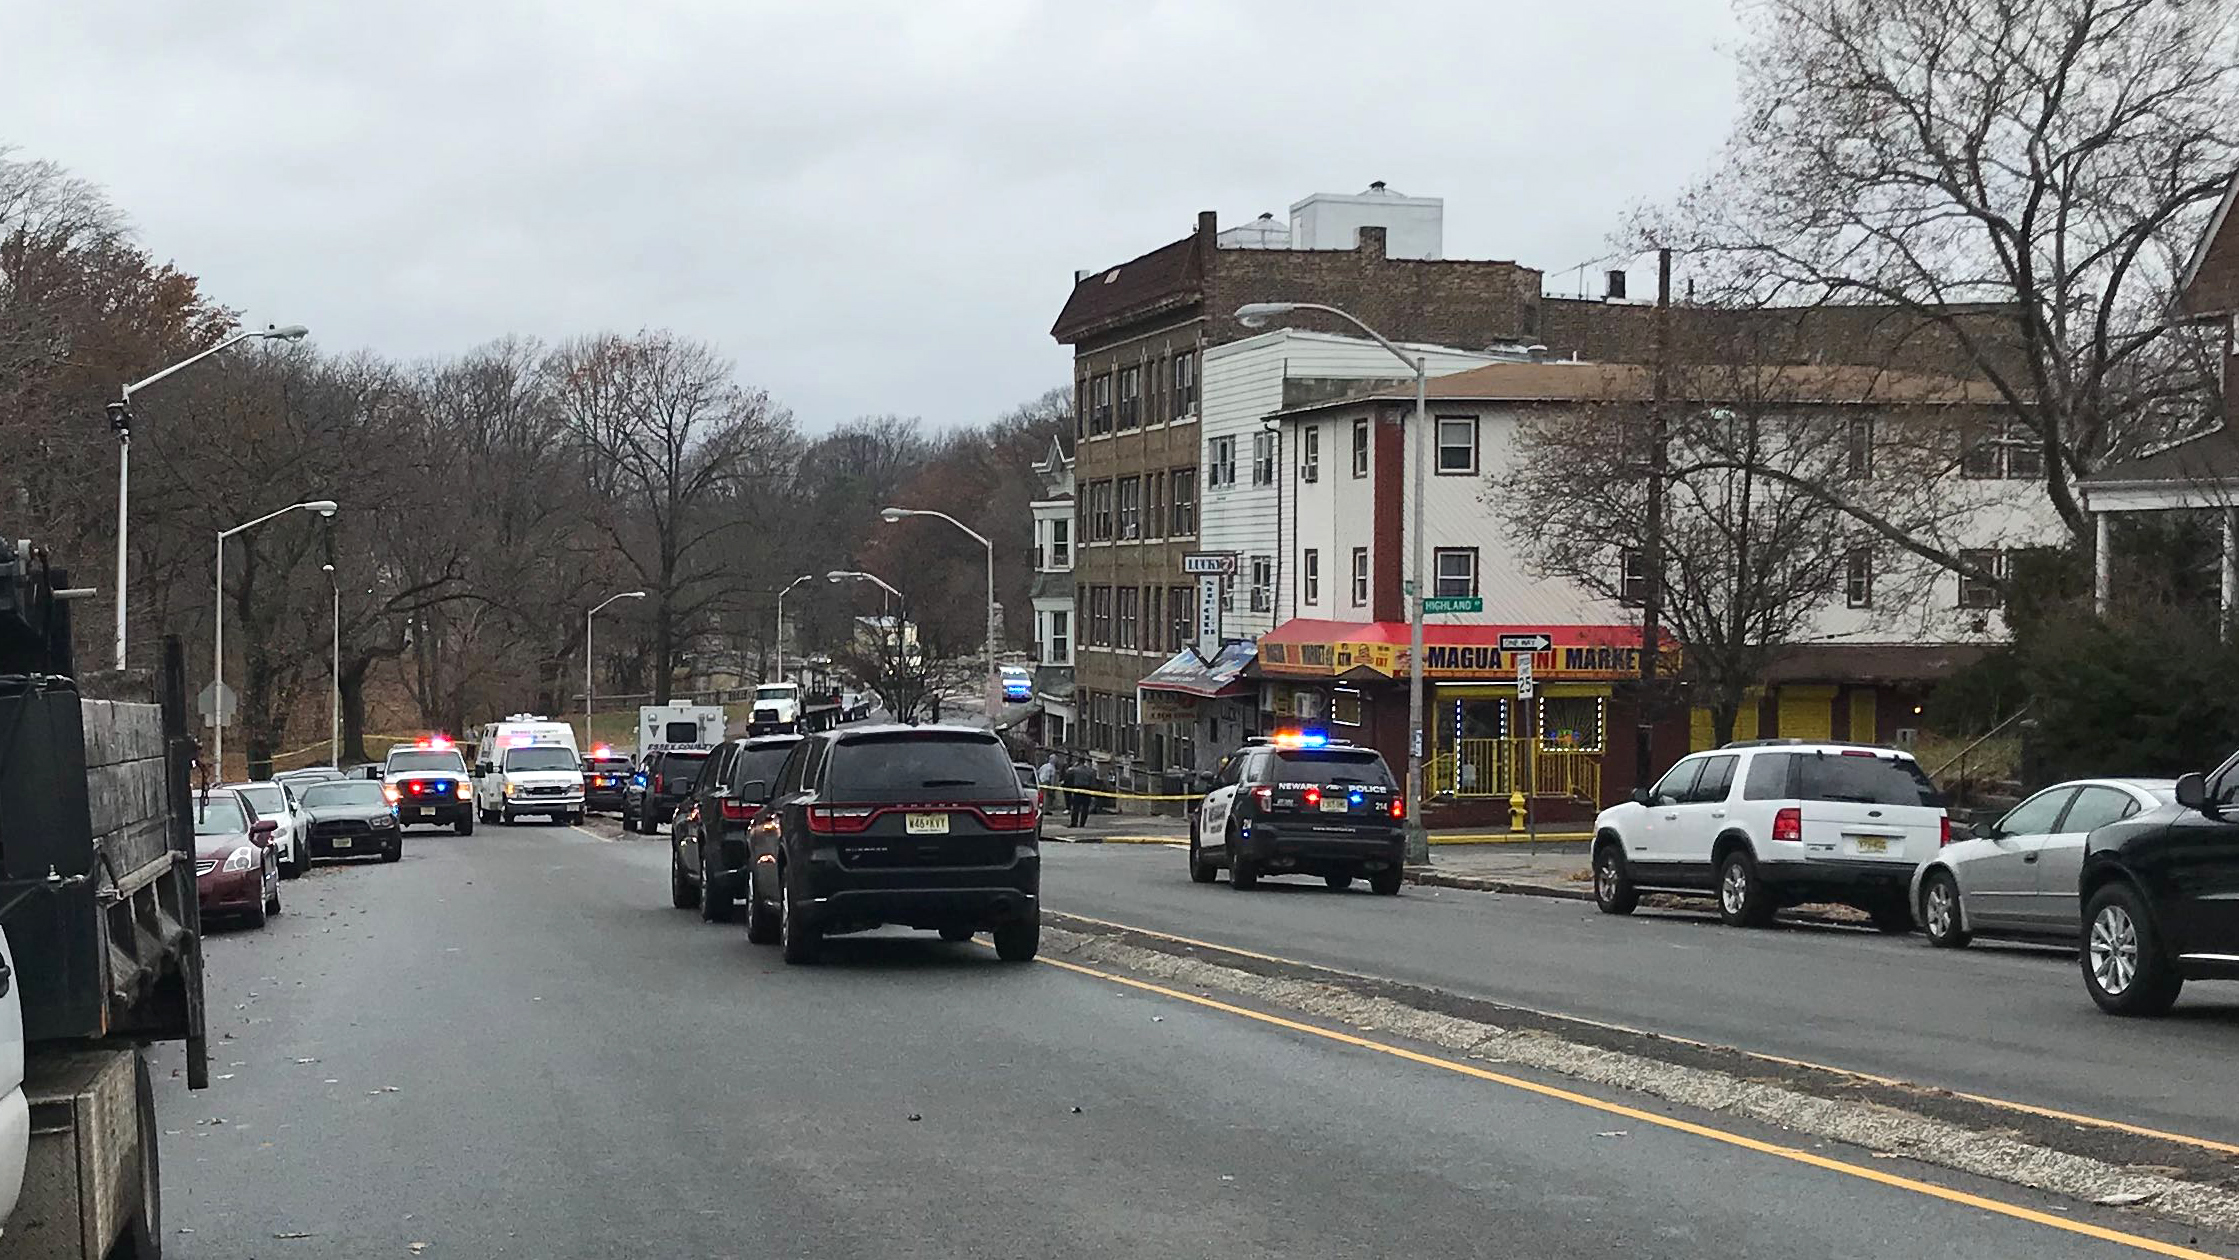 15-year-old stabbed to death, 11-year-old injured in Newark